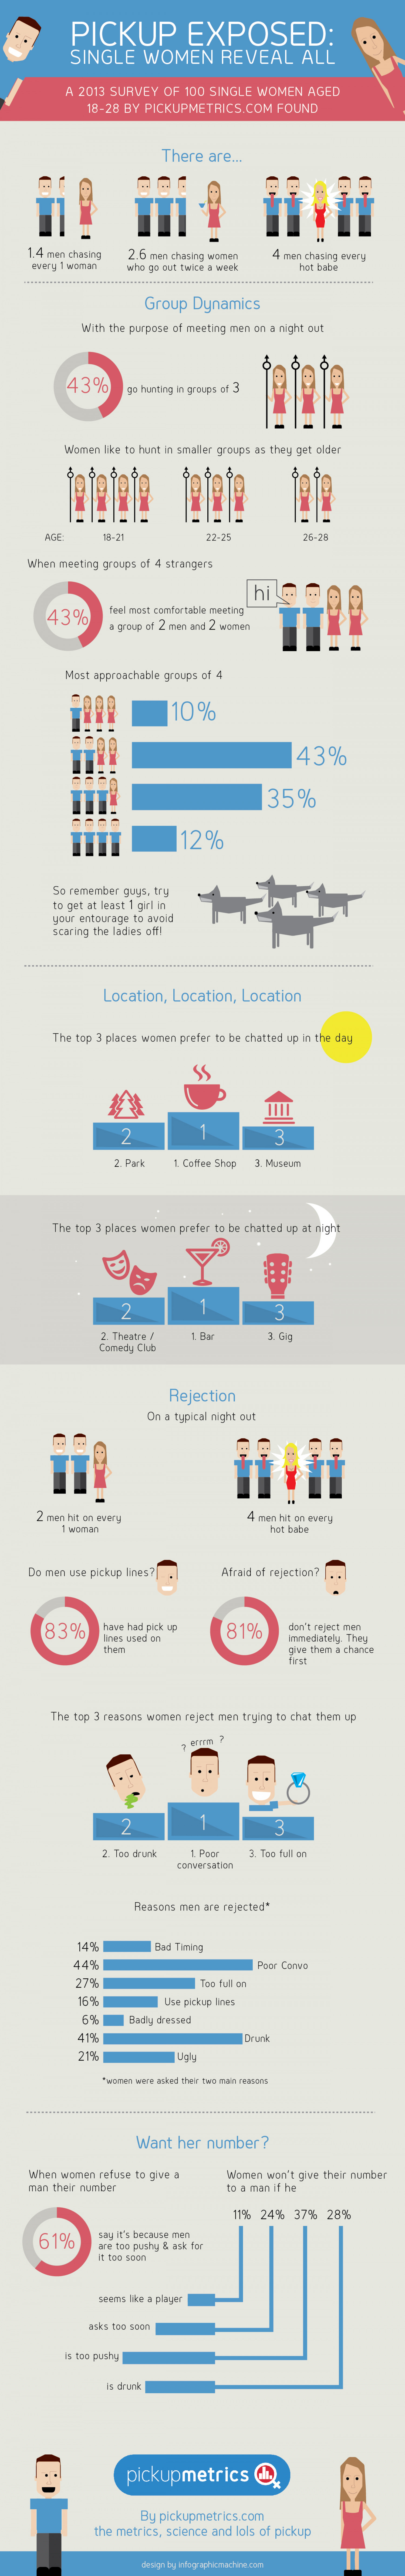 Pickup Exposed: 100 Single Women Reveal All Infographic